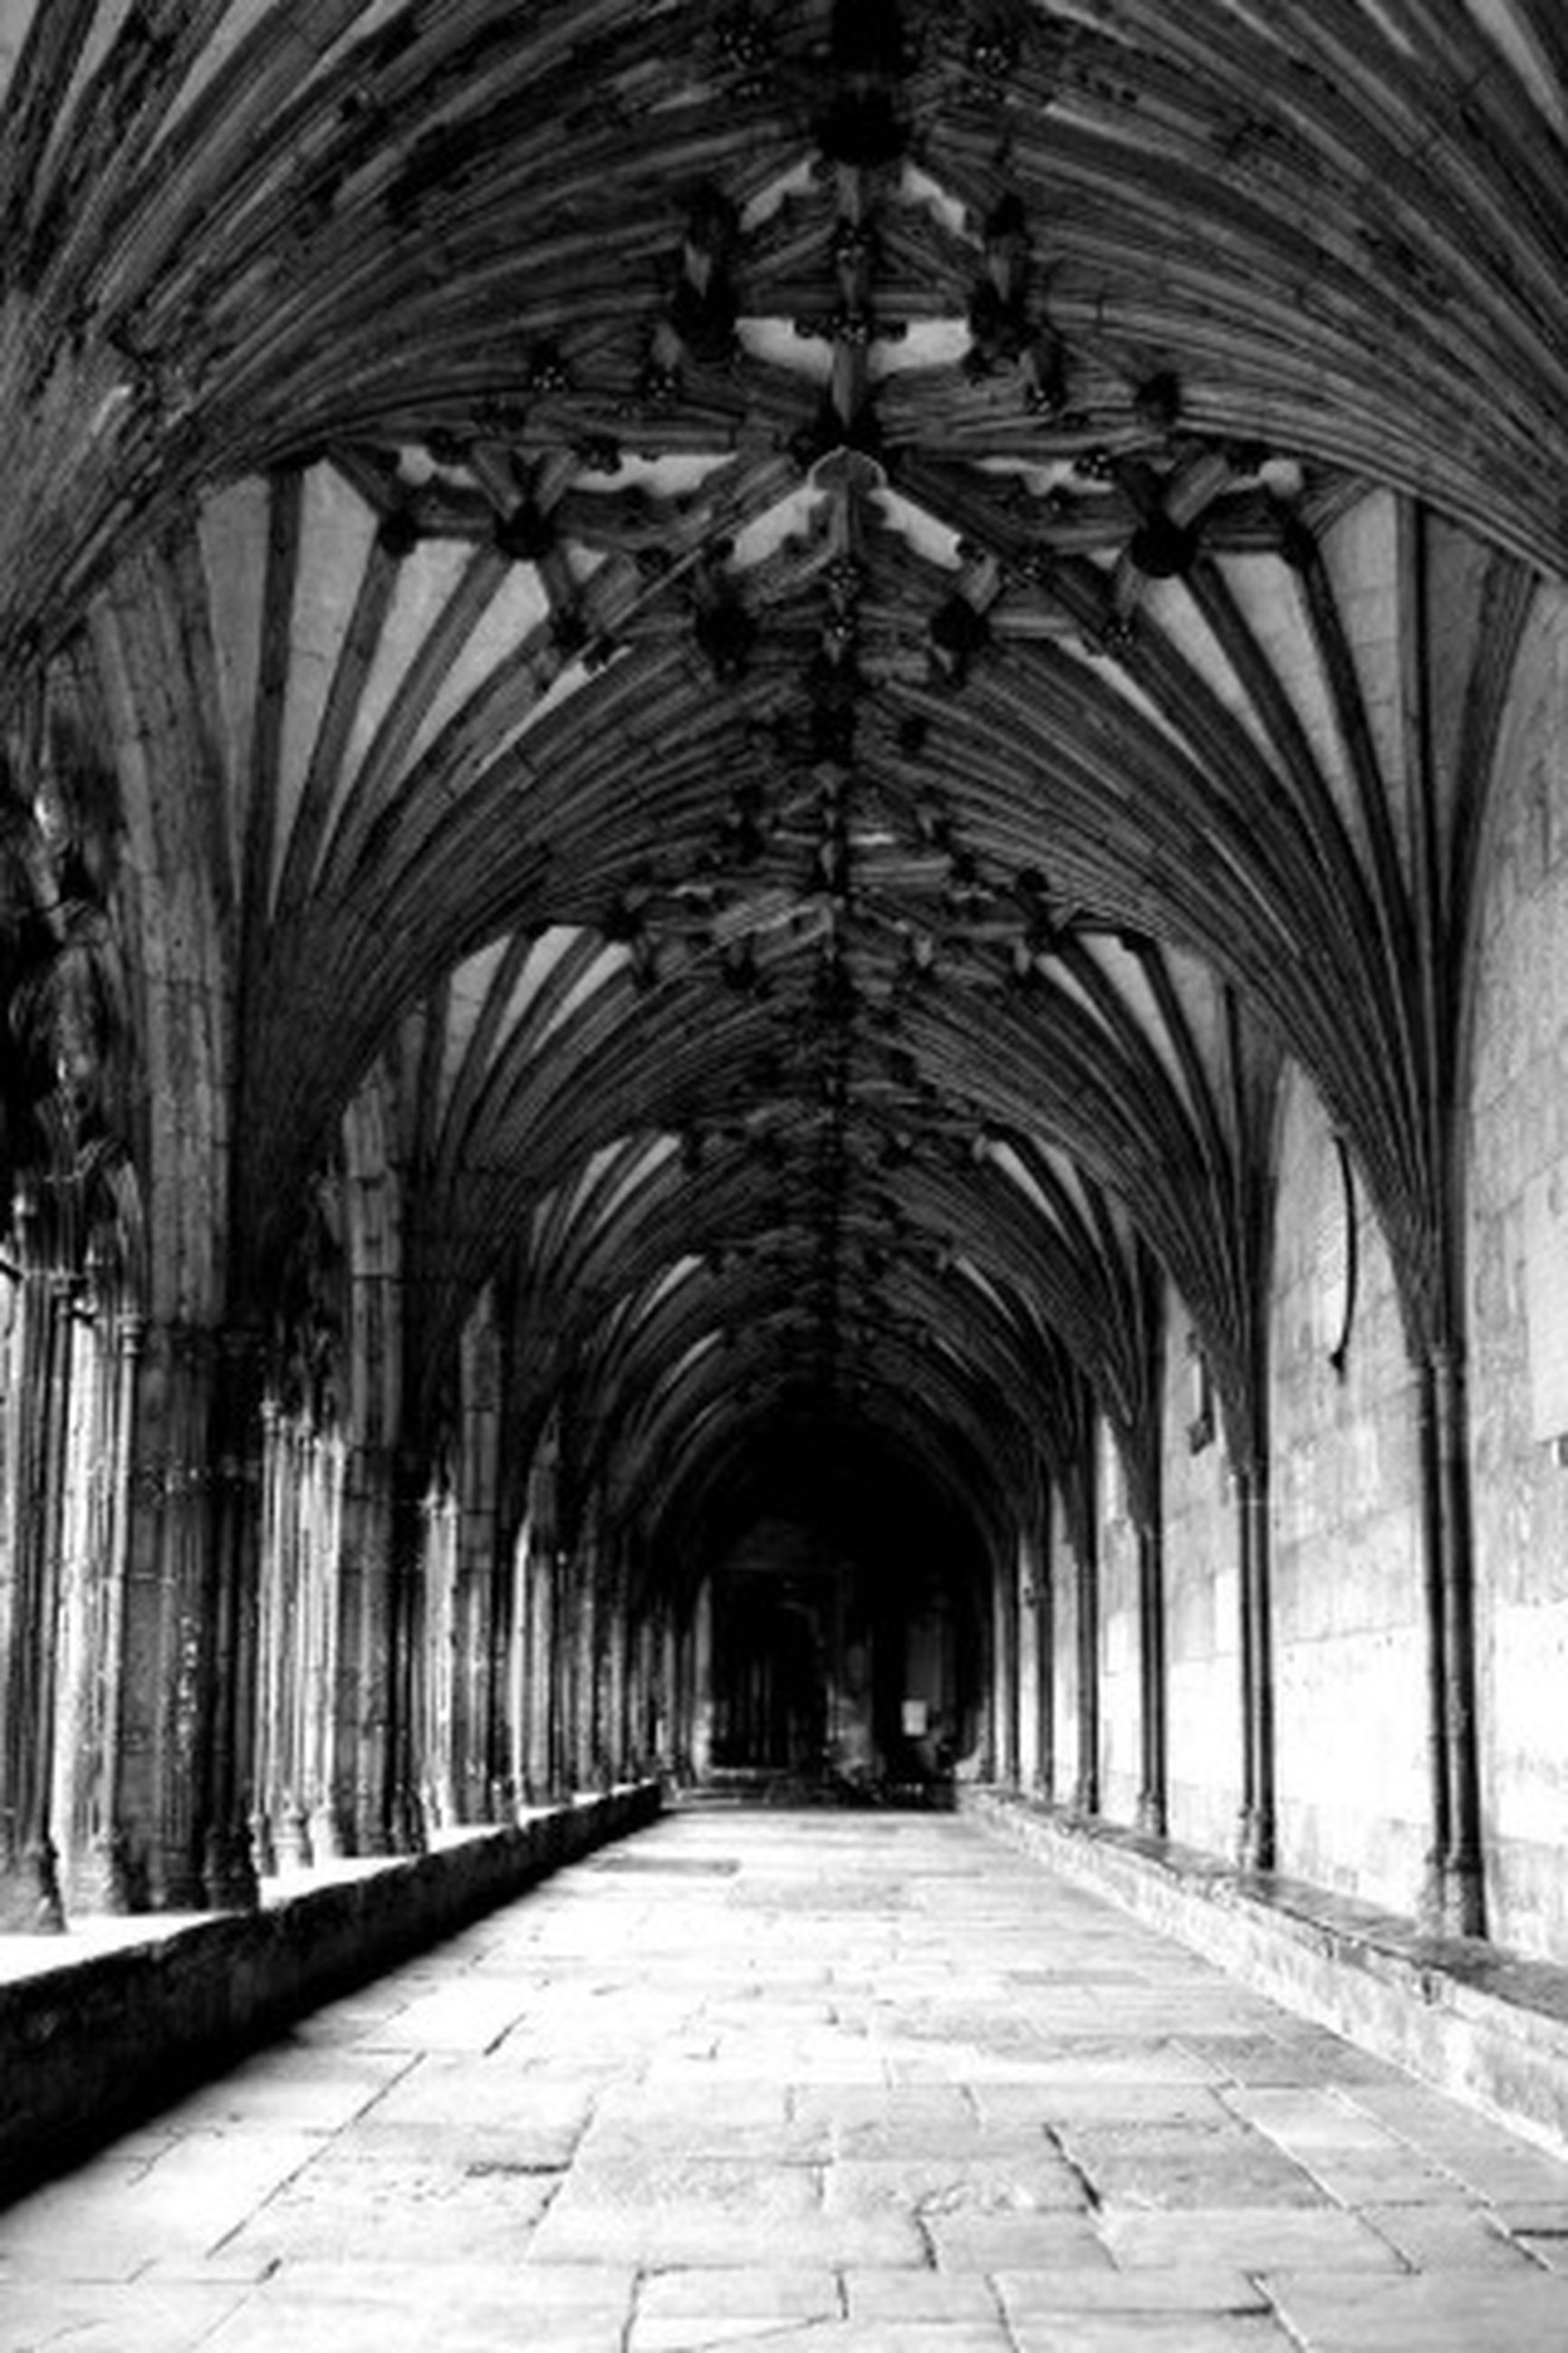 the way forward, arch, indoors, architecture, diminishing perspective, corridor, built structure, ceiling, vanishing point, empty, archway, architectural column, tunnel, walkway, in a row, colonnade, flooring, long, narrow, interior